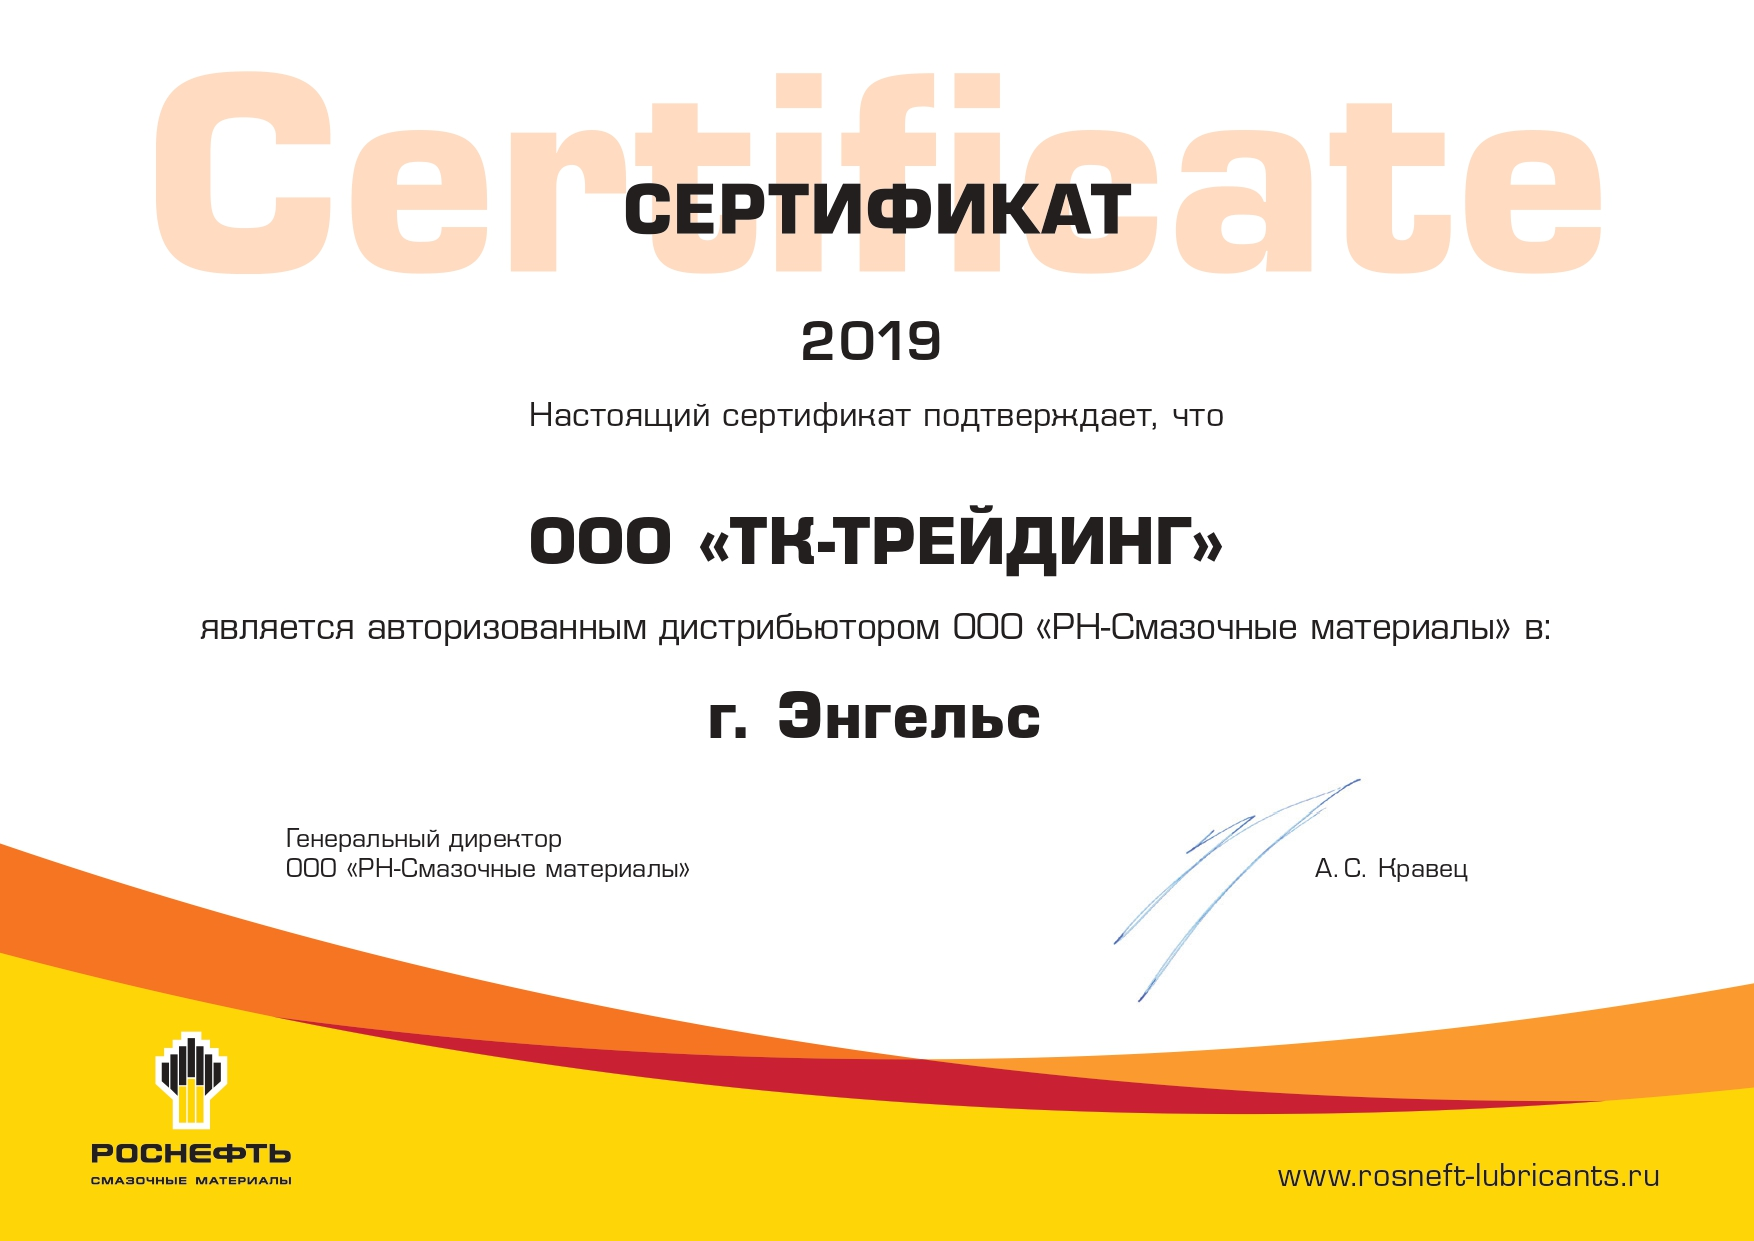 rn_certificate_18-11-19_---.-_preview_page-0001-.jpg